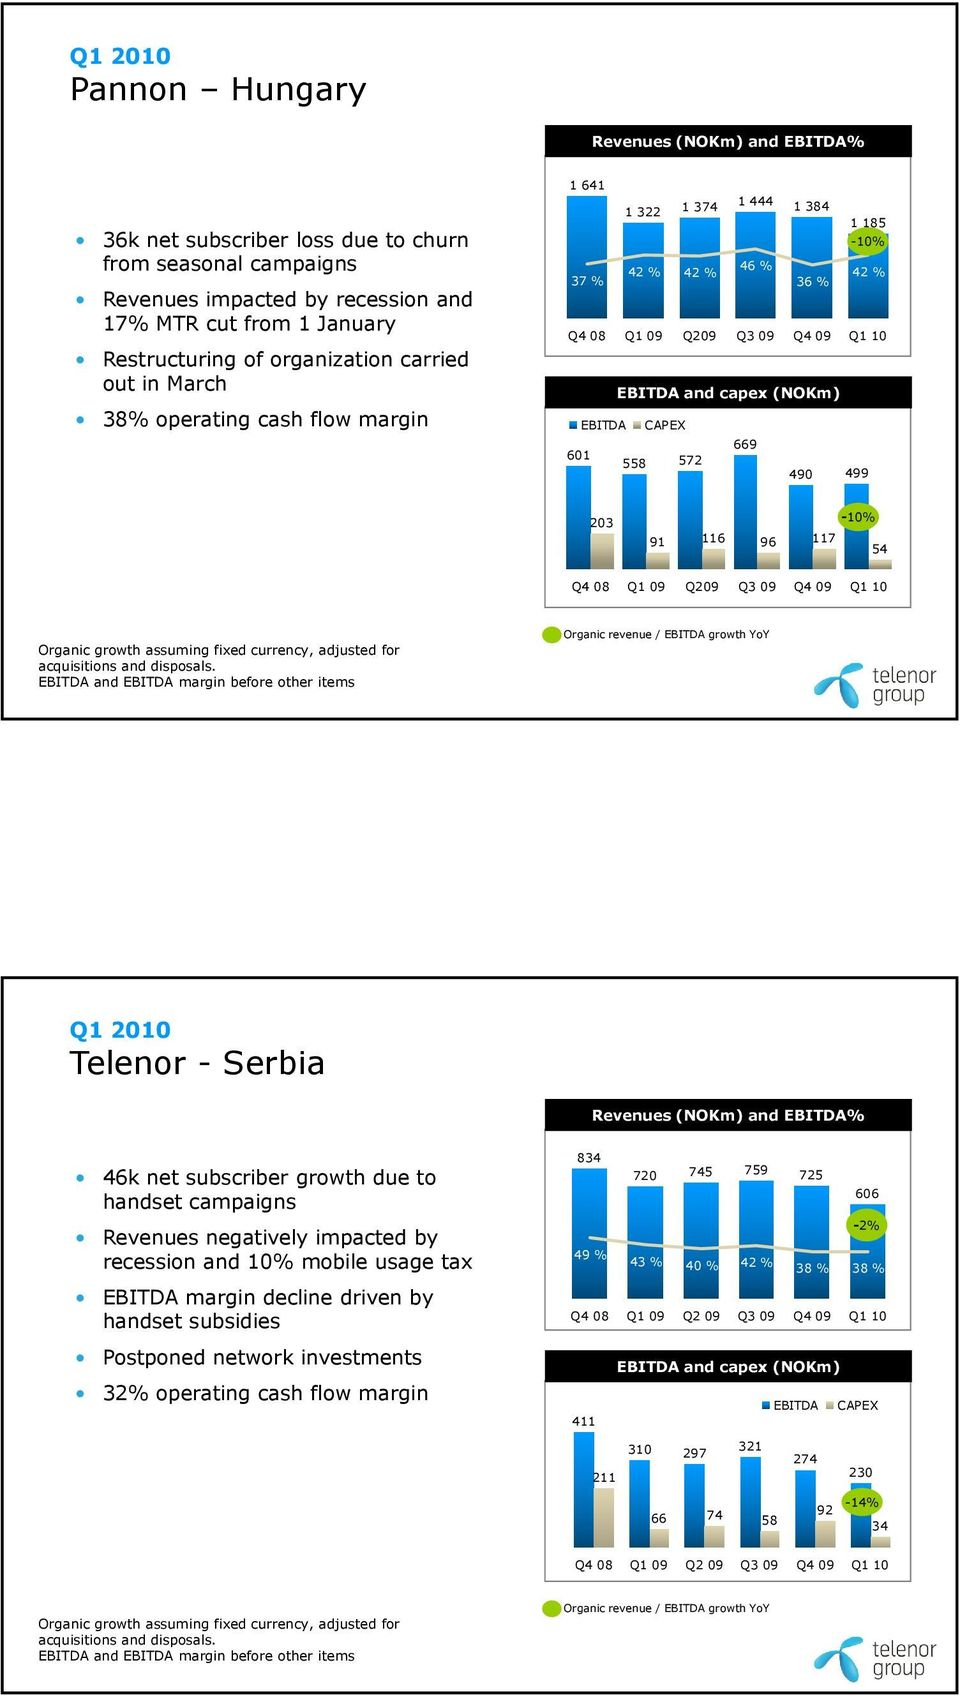 Q4 08 Q1 09 Q209 Q3 09 Q4 09 Q1 10 Telenor - Serbia 46k net subscriber growth due to handset campaigns Revenues negatively impacted by recession and 10% mobile usage tax EBITDA margin decline